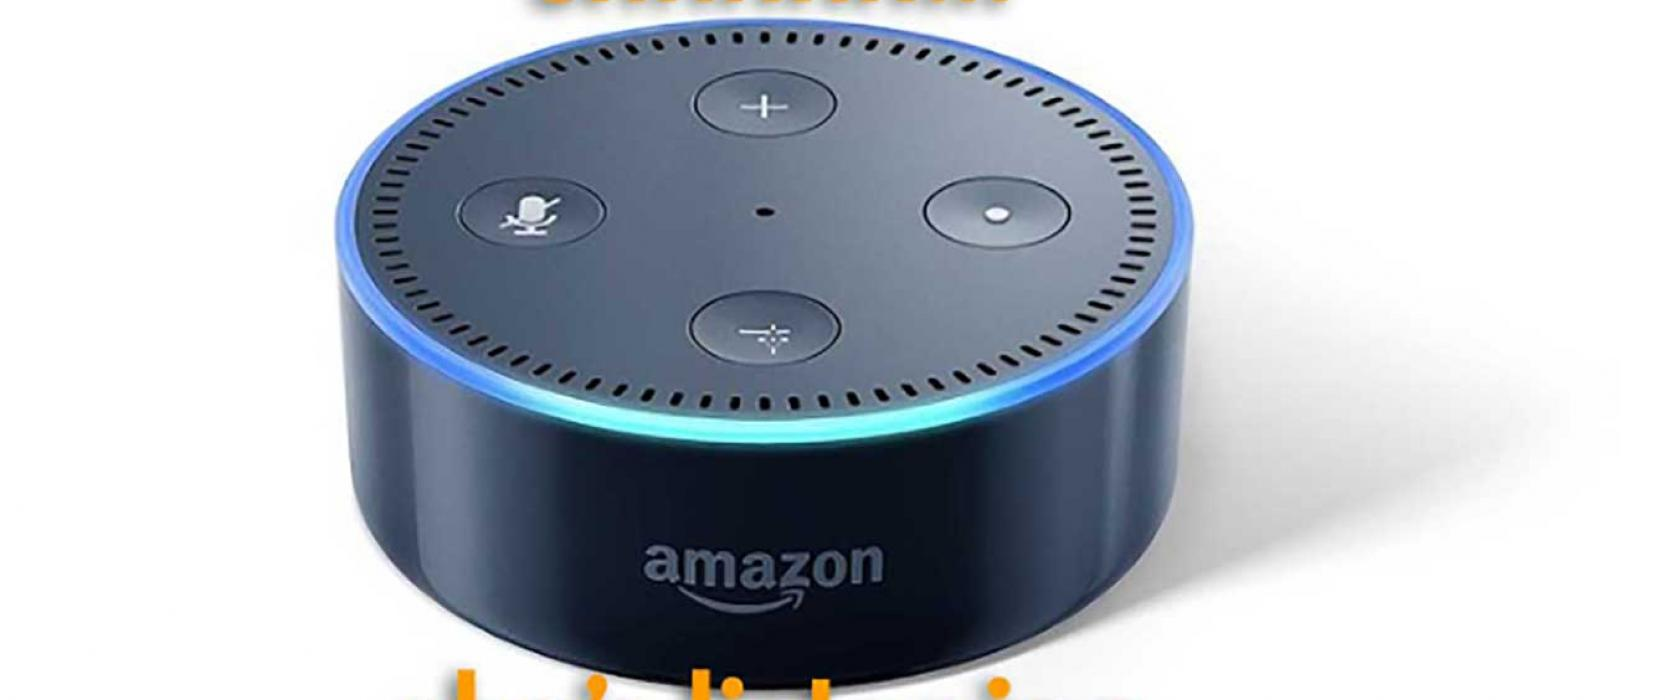 Image suggesting Alexa is recording our conversations